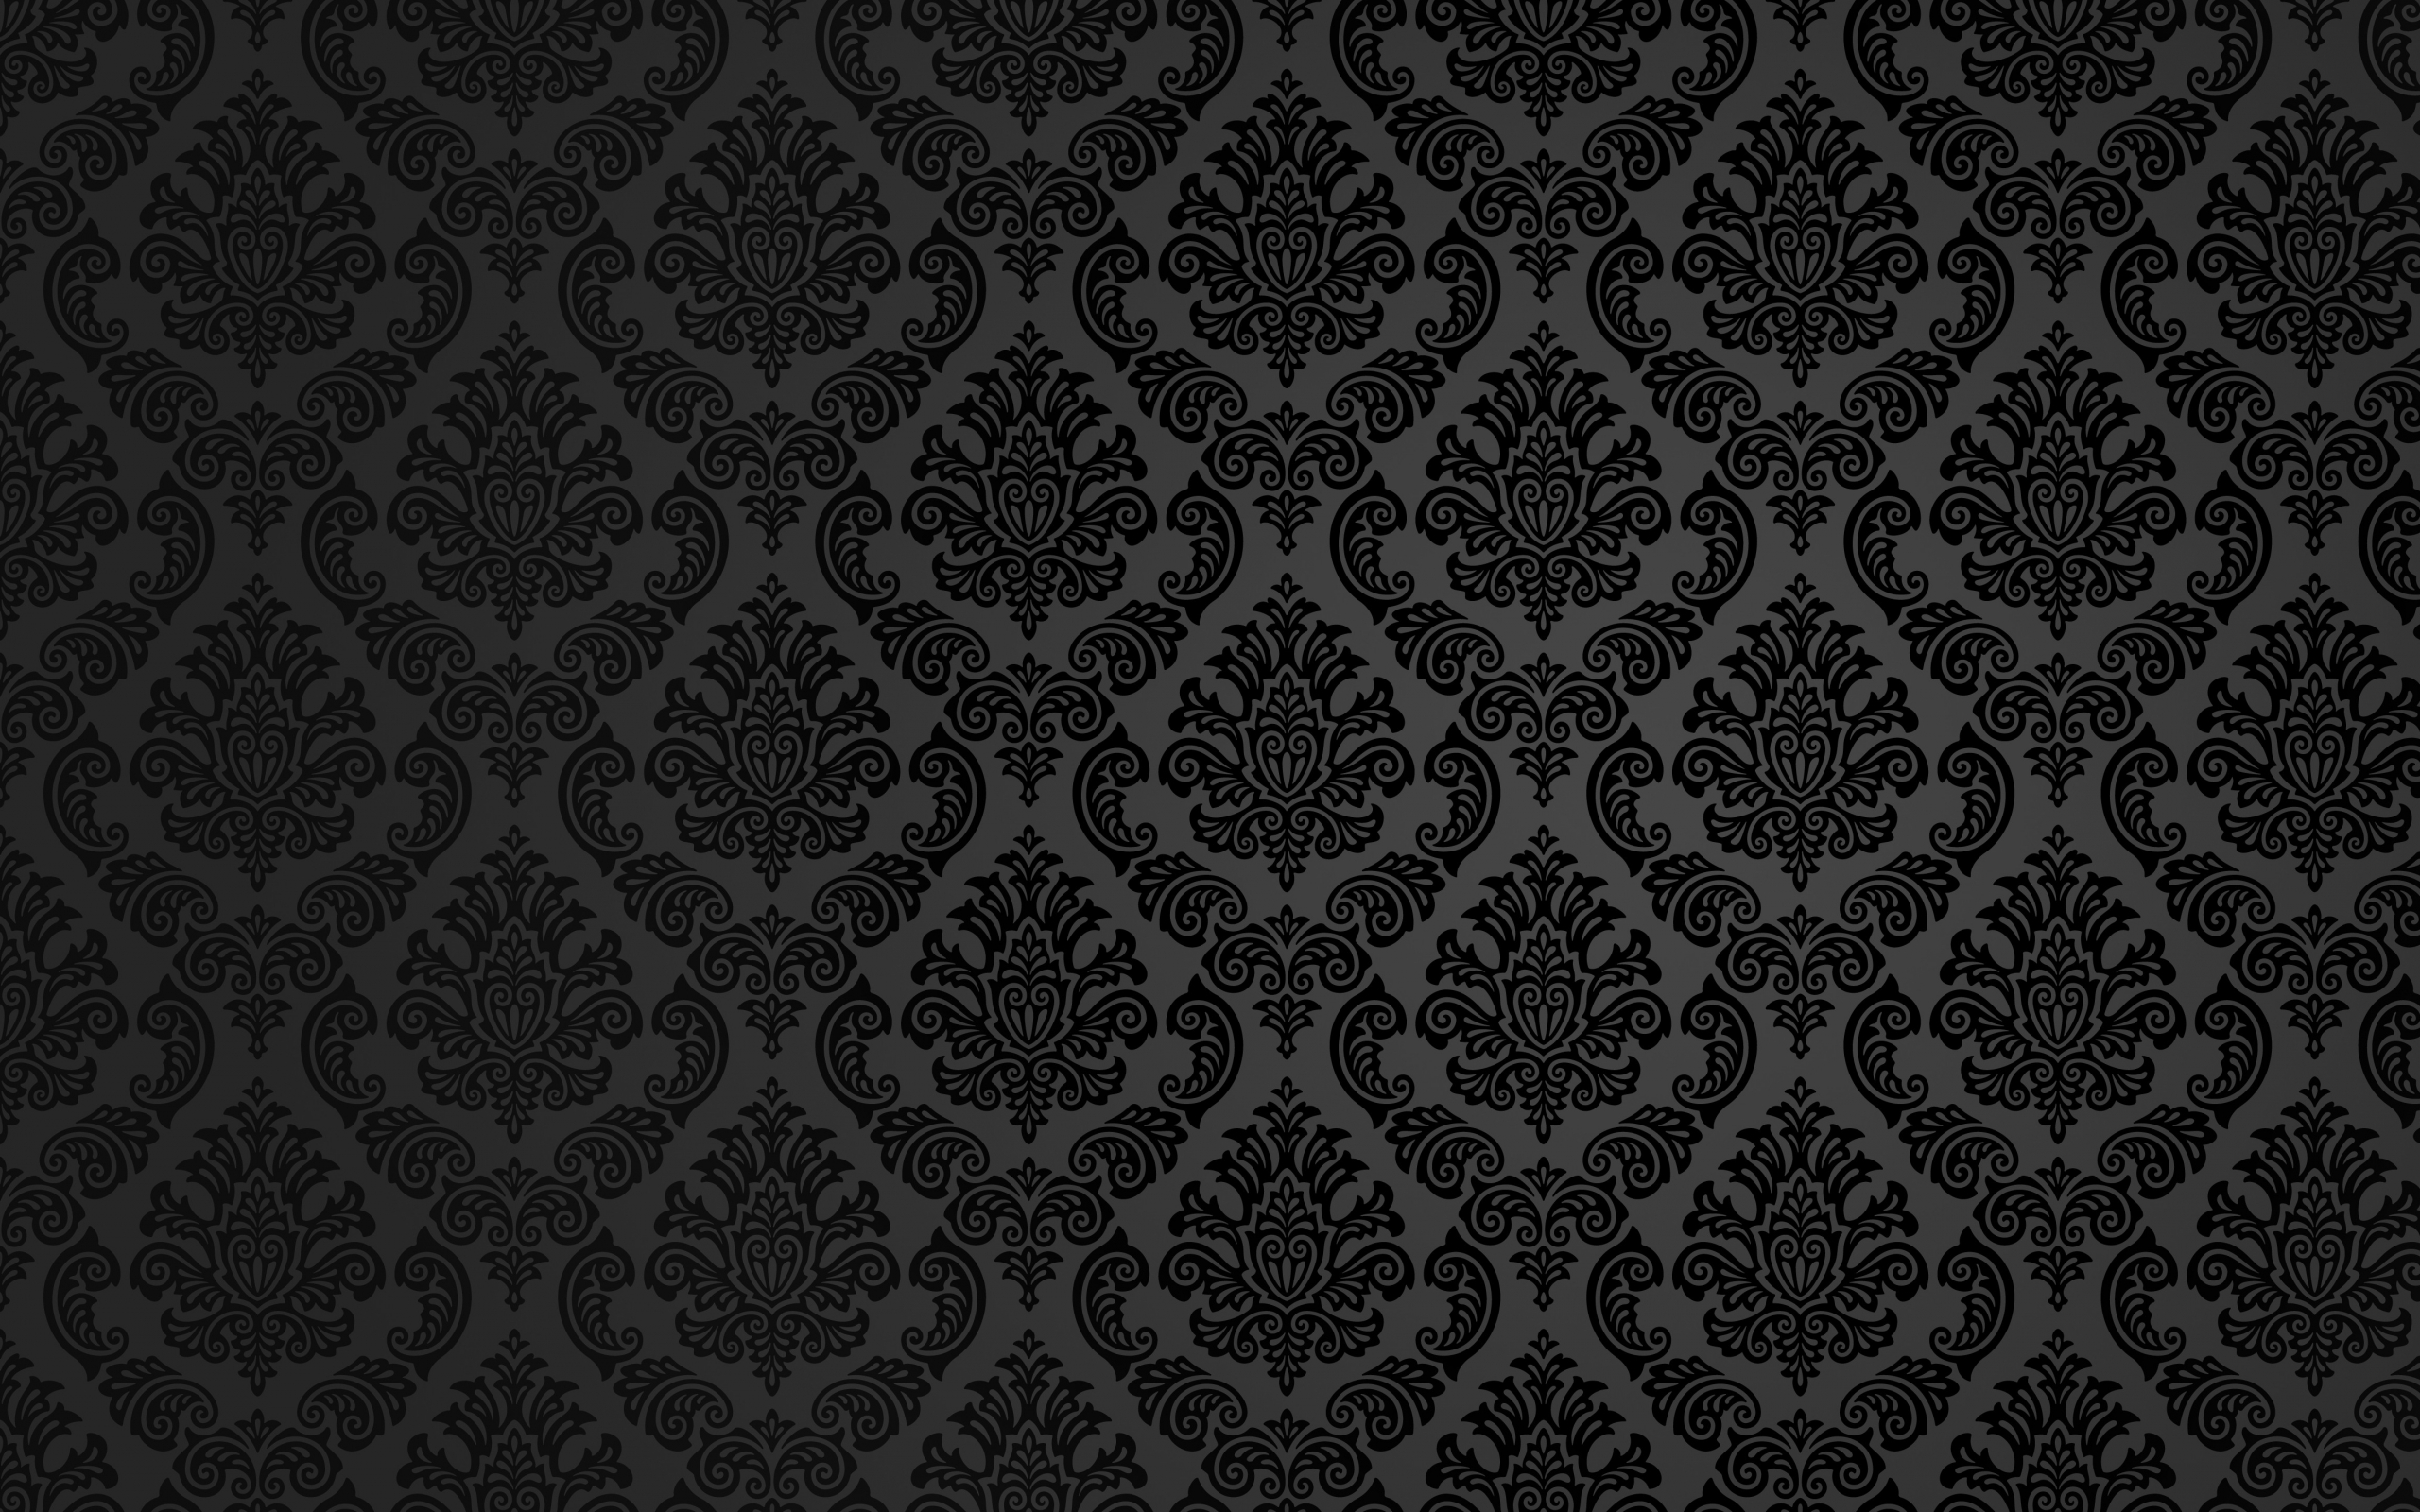 Download wallpapers download 25601600 patterns damask 63002893 2560x1600